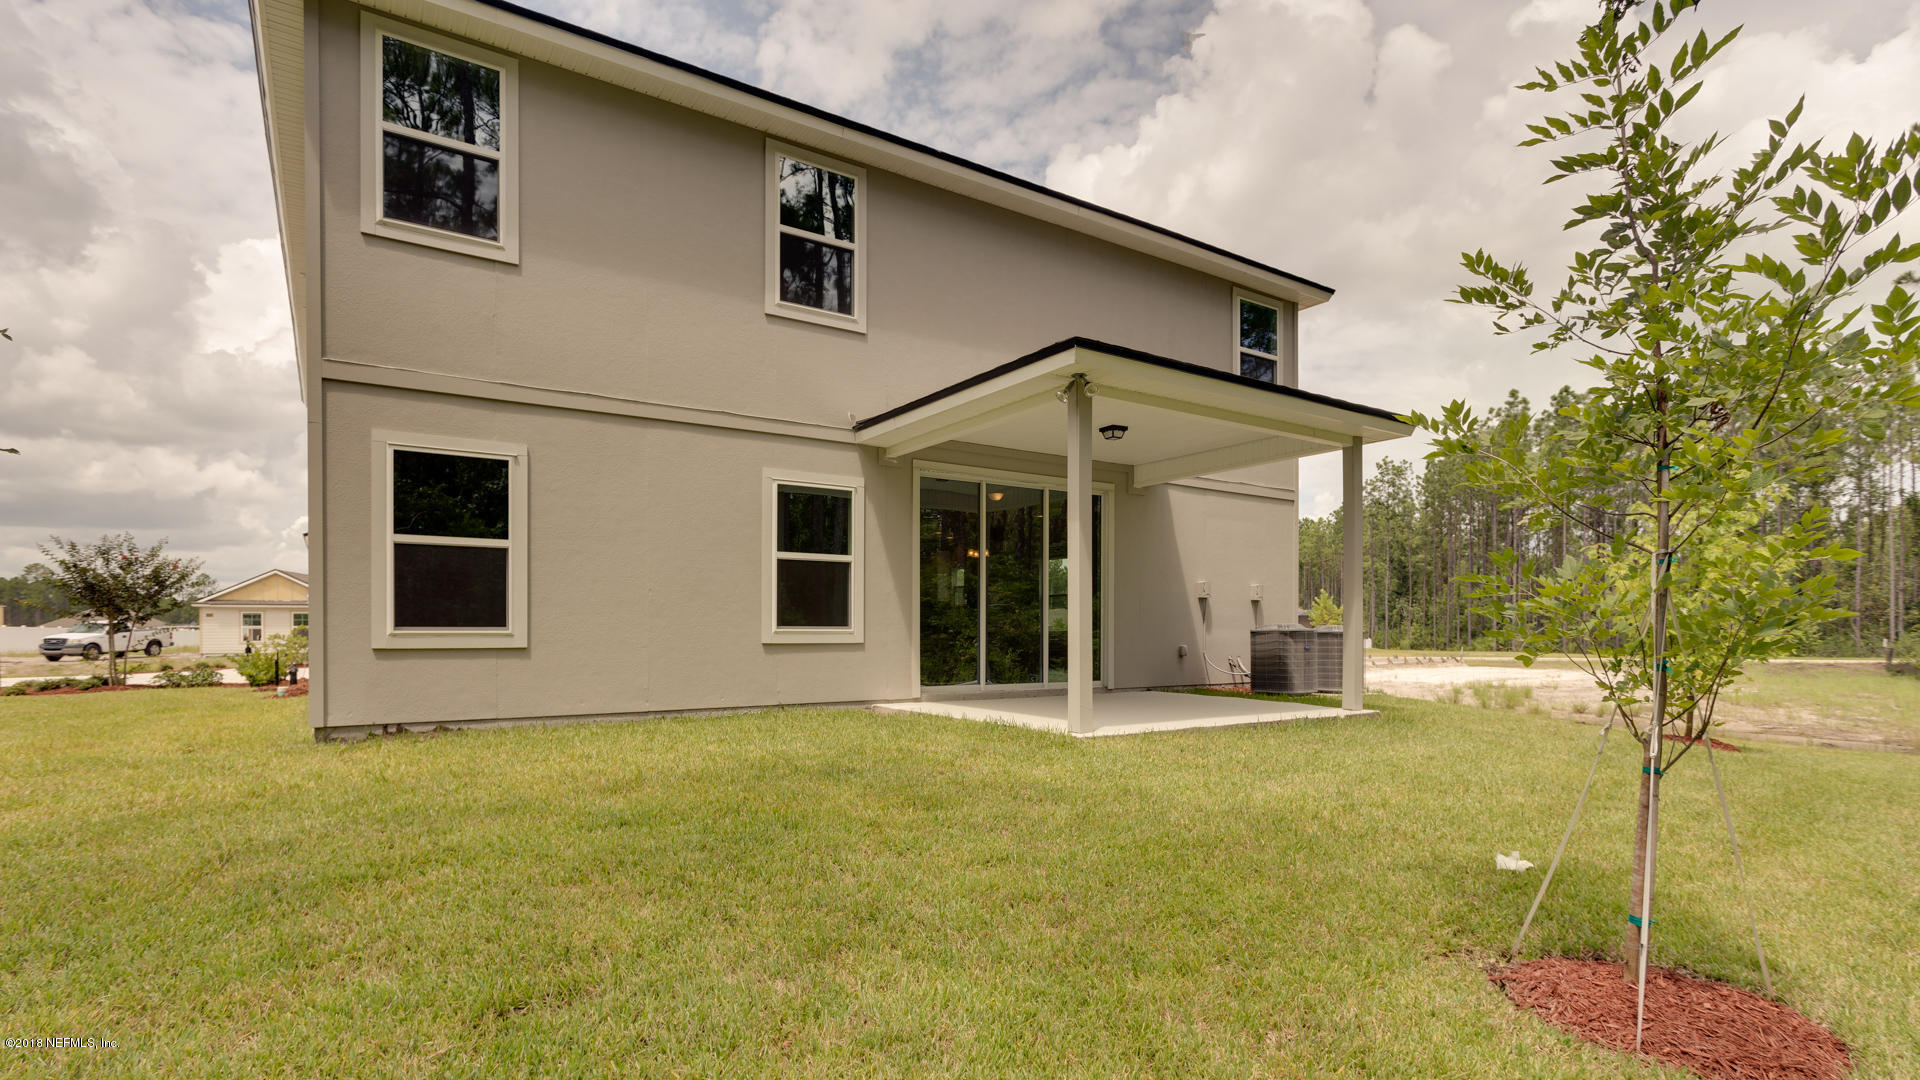 11605 PACEYS POND, JACKSONVILLE, FLORIDA 32222, 4 Bedrooms Bedrooms, ,2 BathroomsBathrooms,Residential - single family,For sale,PACEYS POND,909266